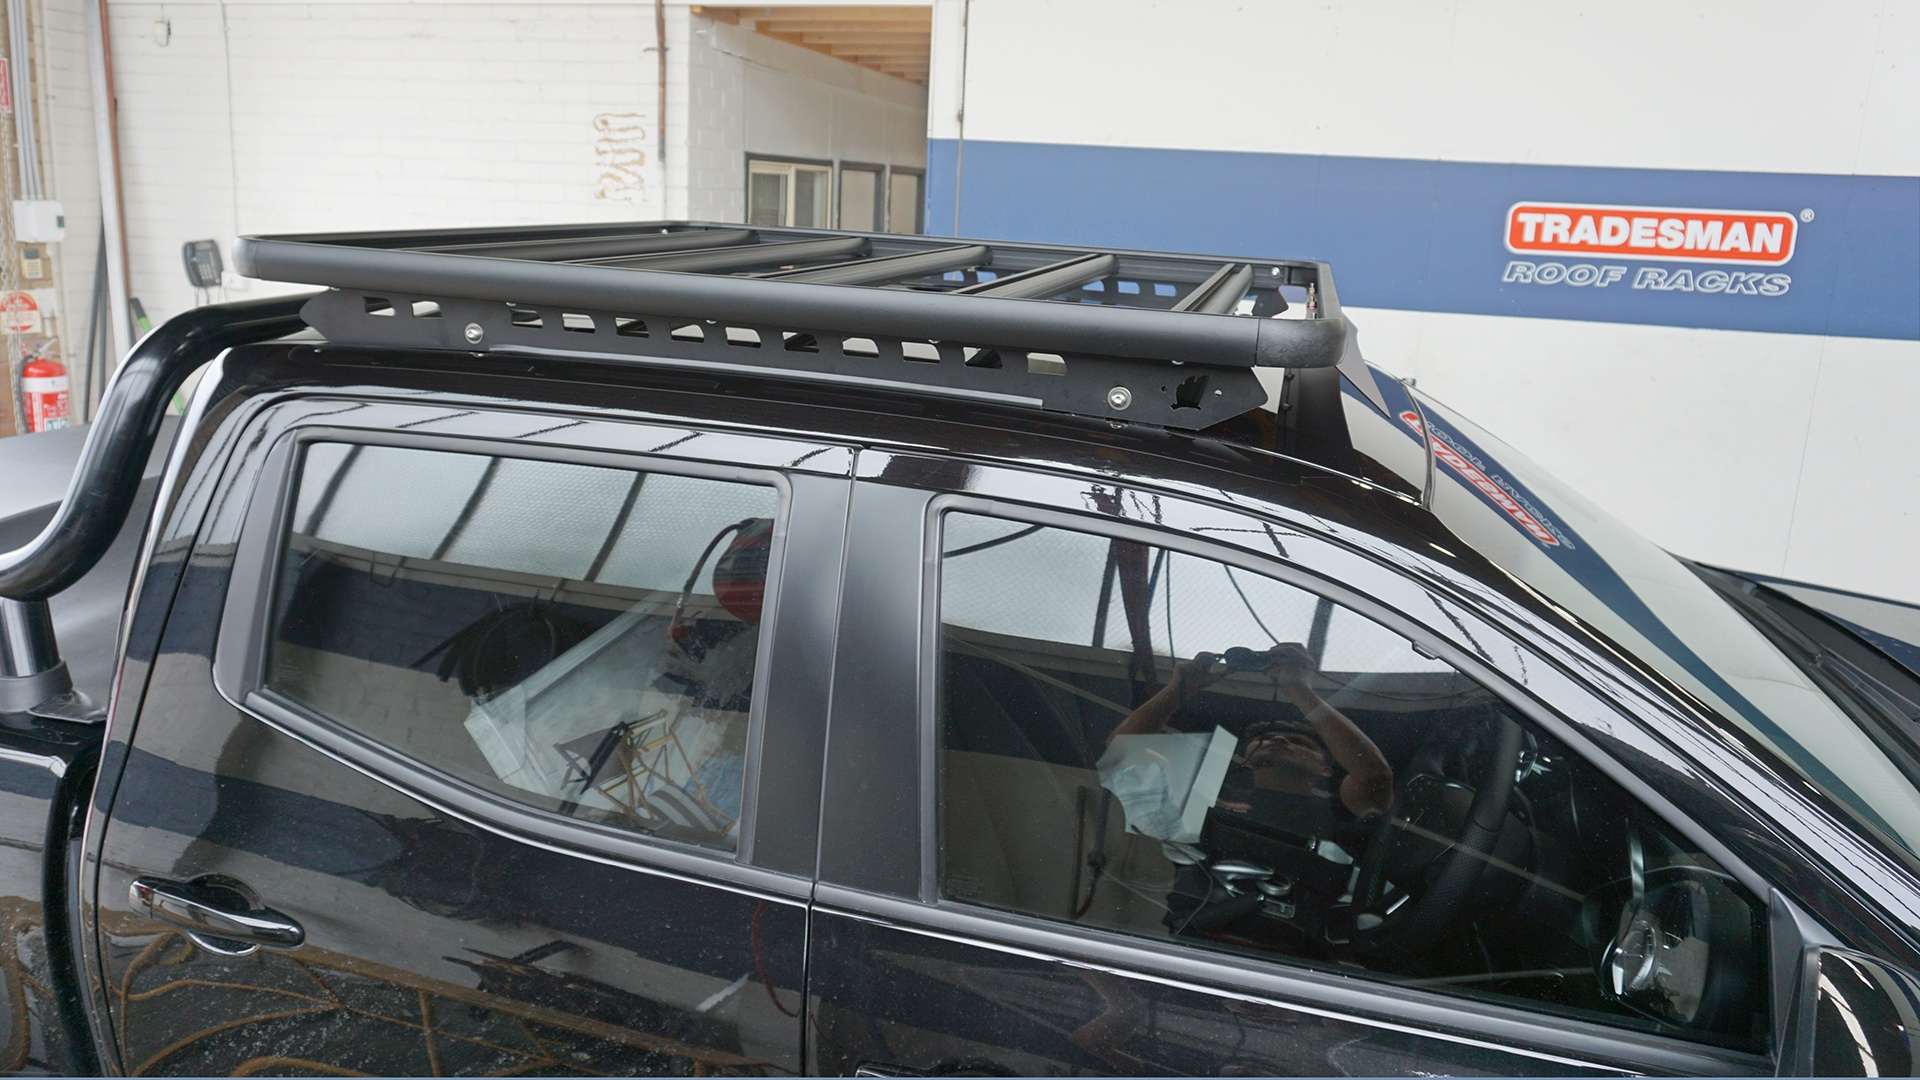 Raised side view of Navara with a Wedgetail roof rack installed showing the one piece mounting rails and the five cross bards used in the construction of the platform.